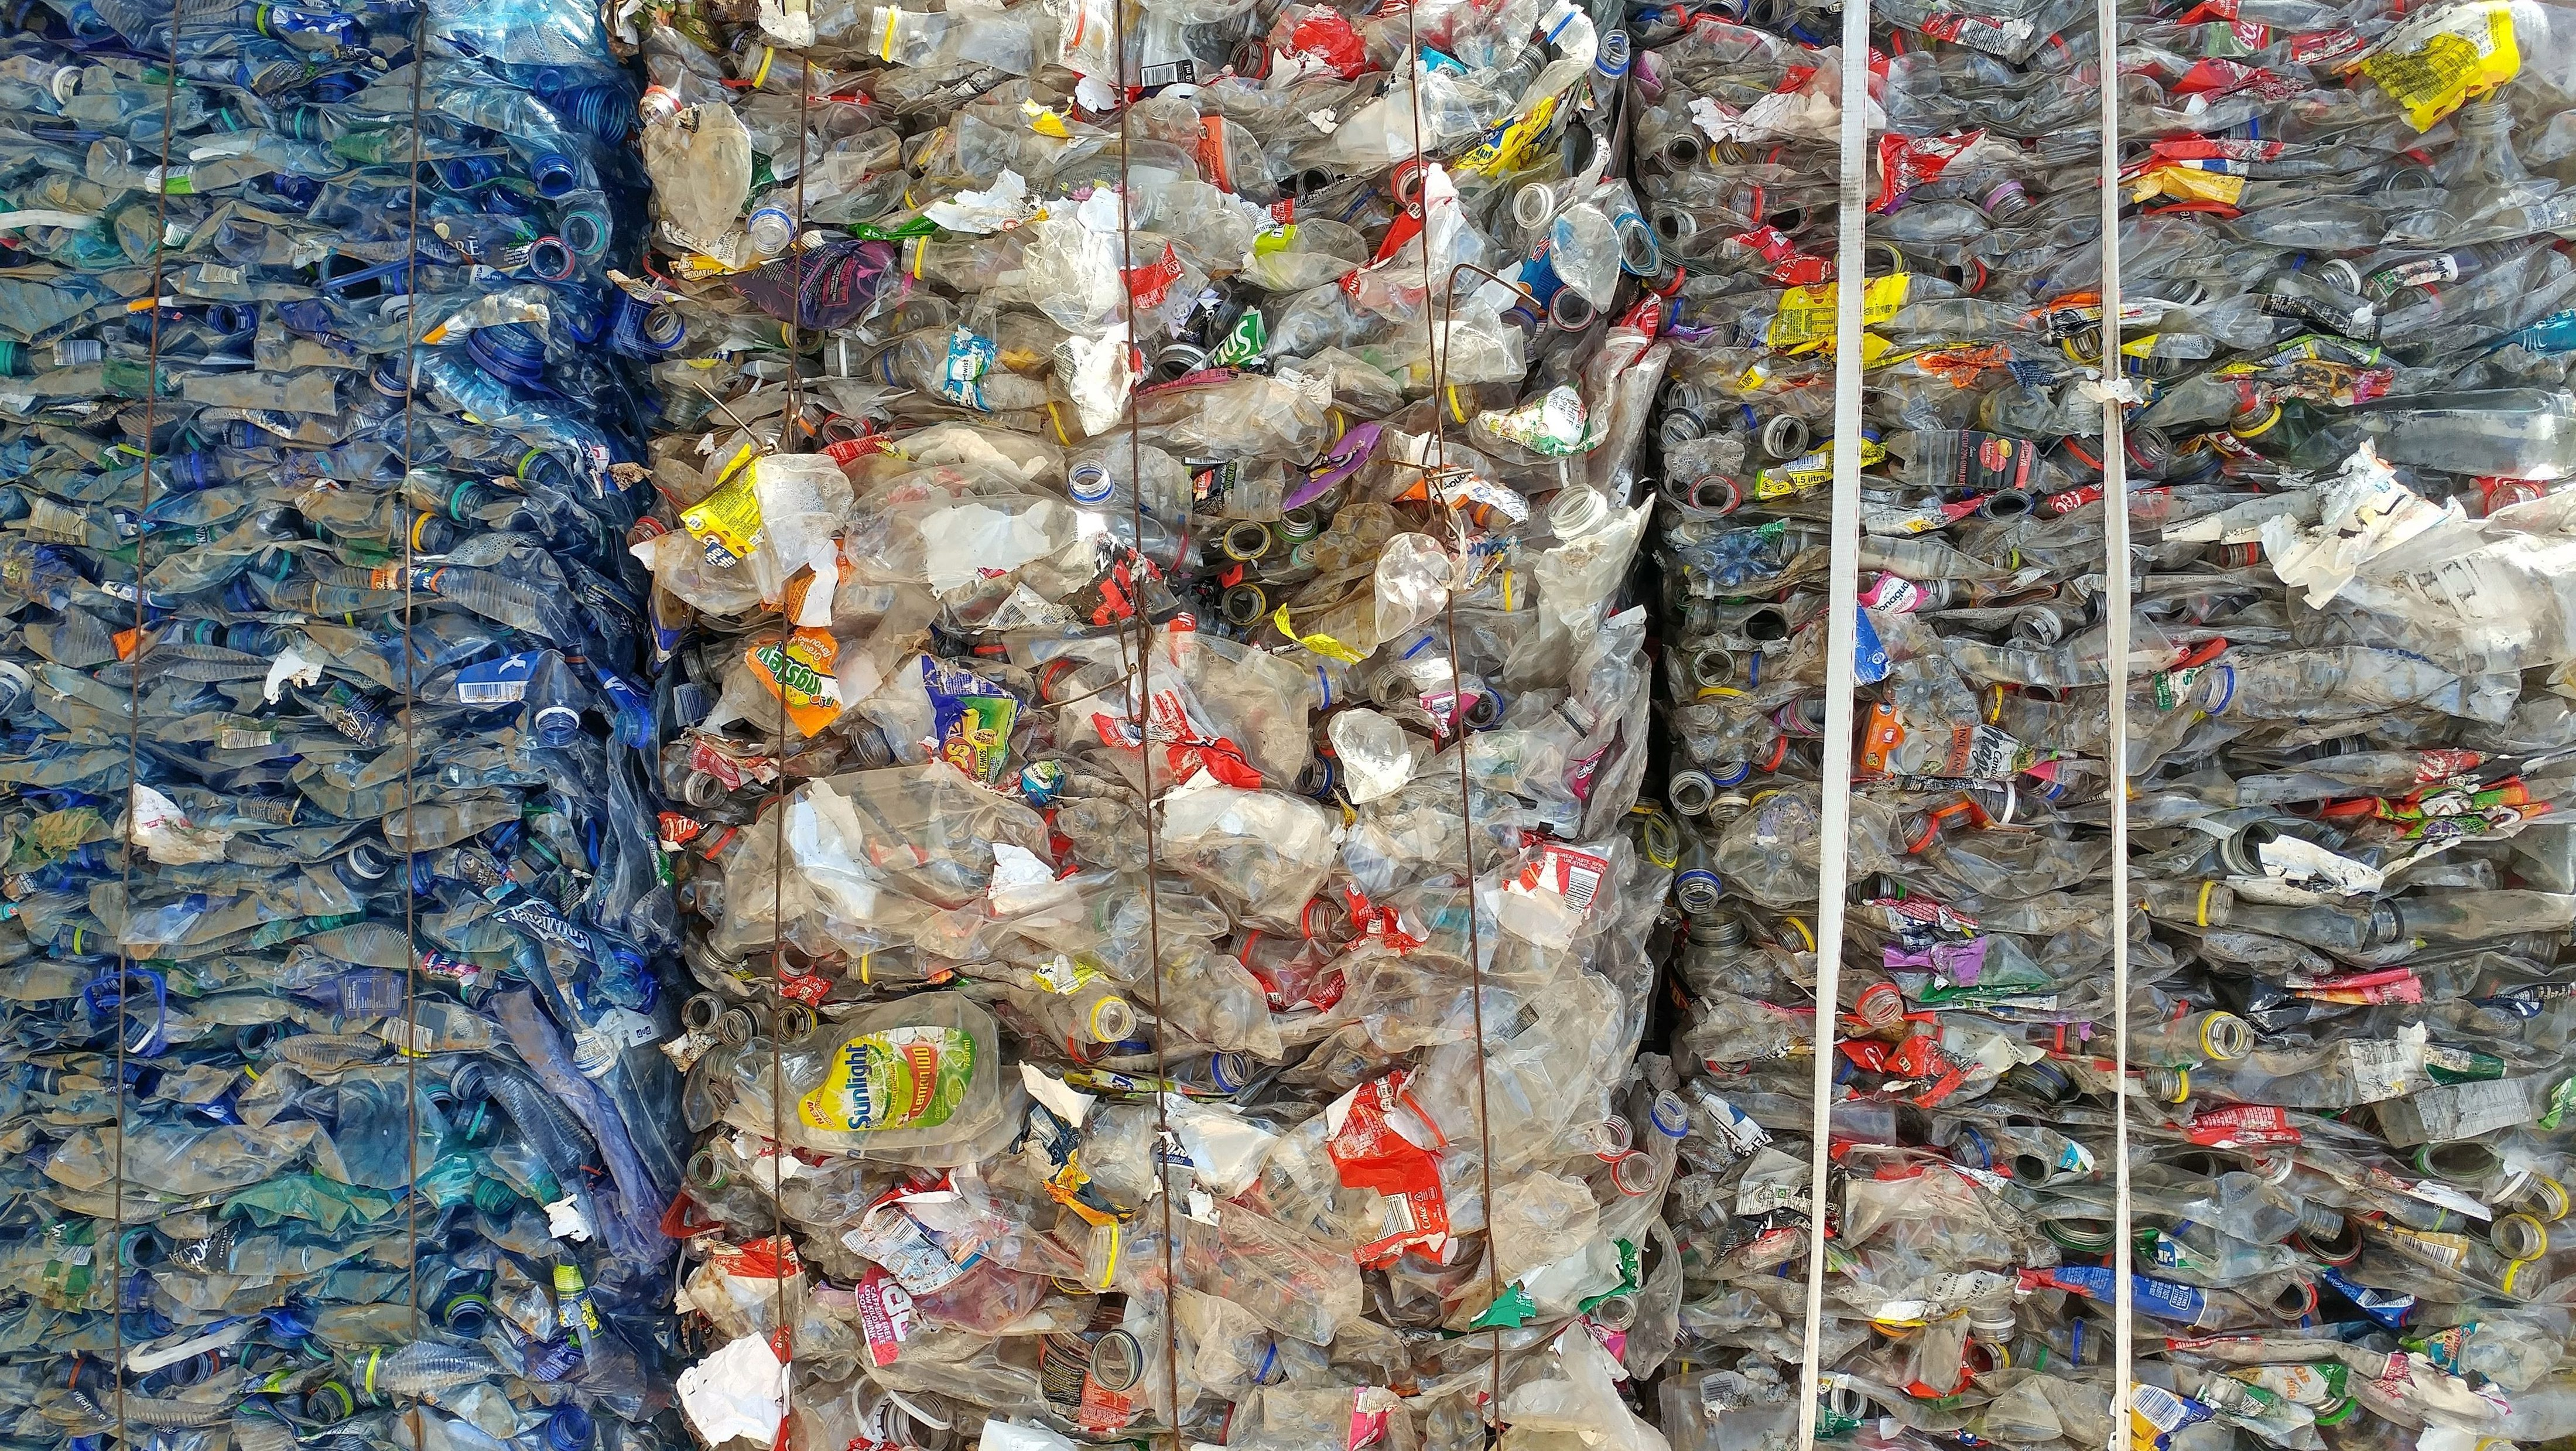 Now that China won't take it, the world will have an extra 111 million metric tons of its plastic waste to deal with by 2030.